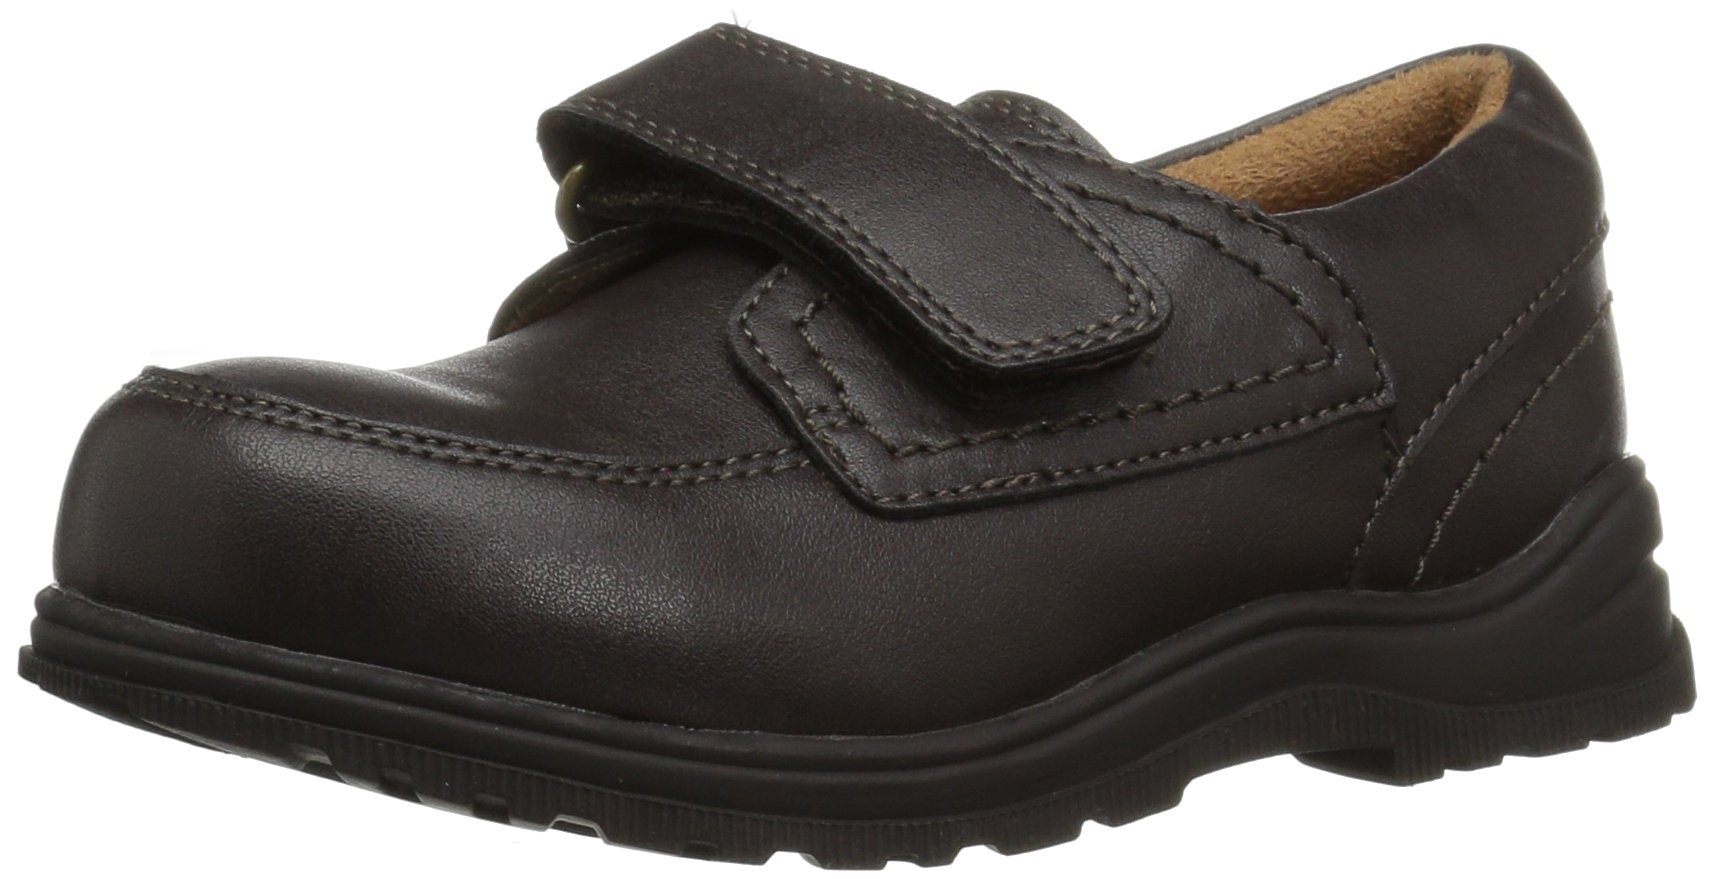 The Children's Place Boys' E TB UNIF RSVP Uniform Dress Shoe, Brown, TDDLR 11 US Toddler